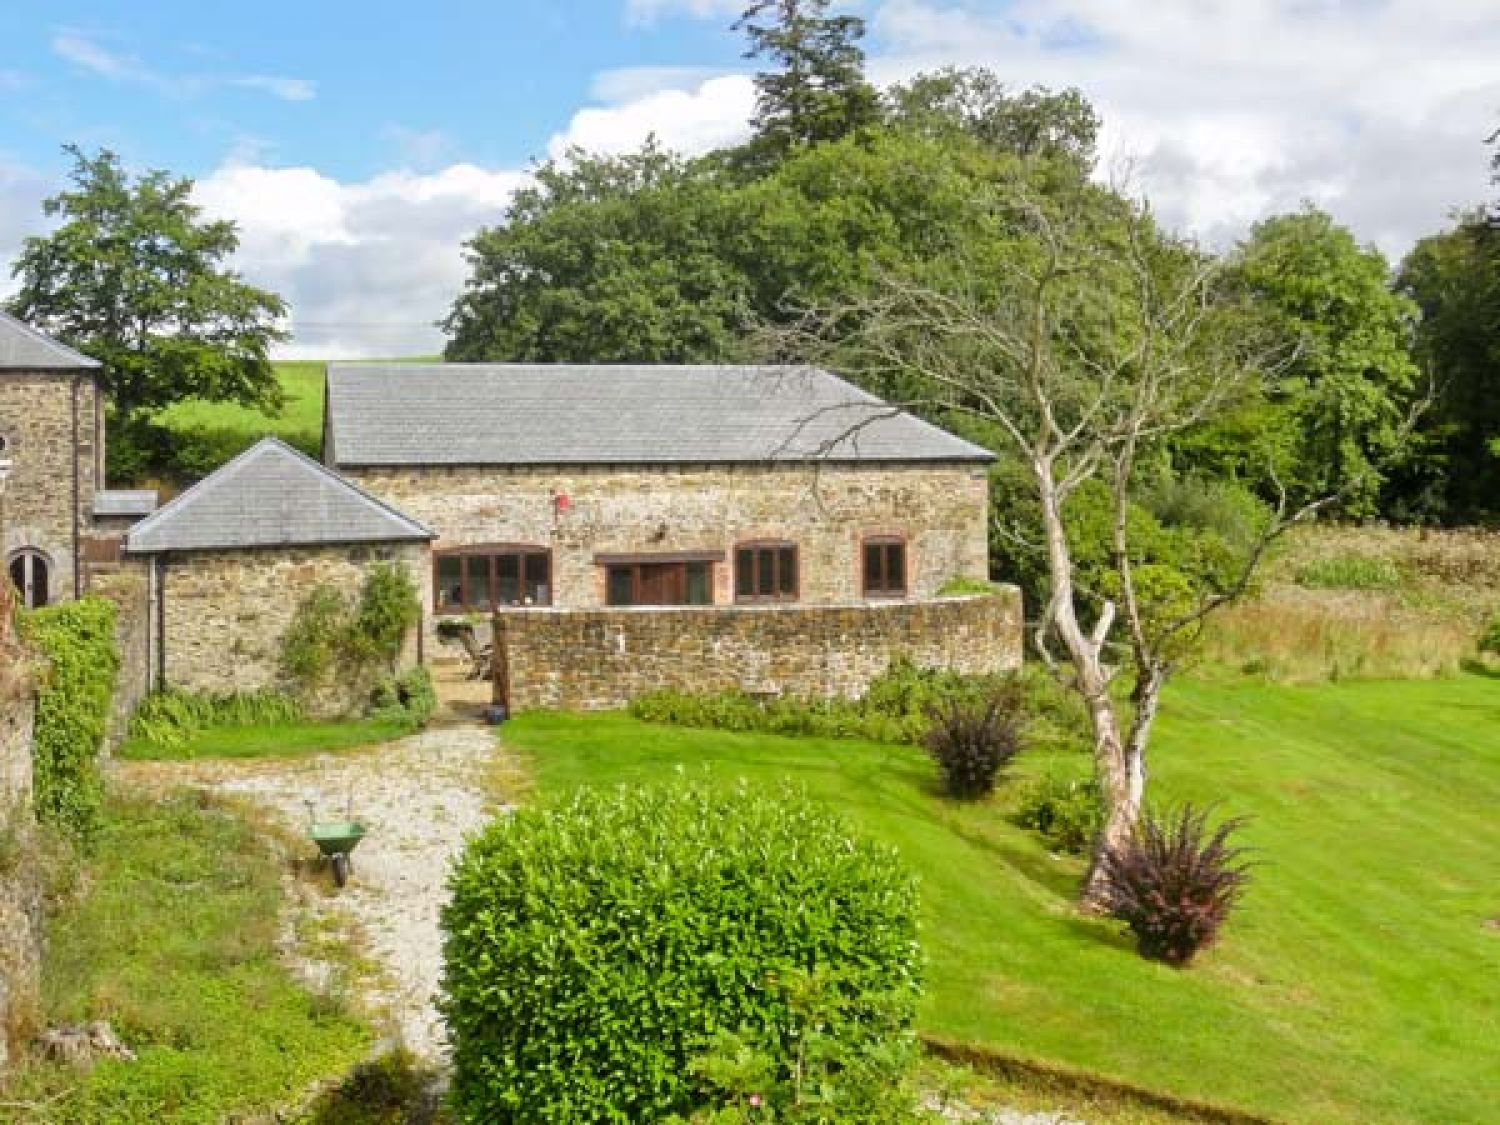 Holiday Cottages in Devon: The Coach House, Bratton Clovelly | sykescottages.co.uk